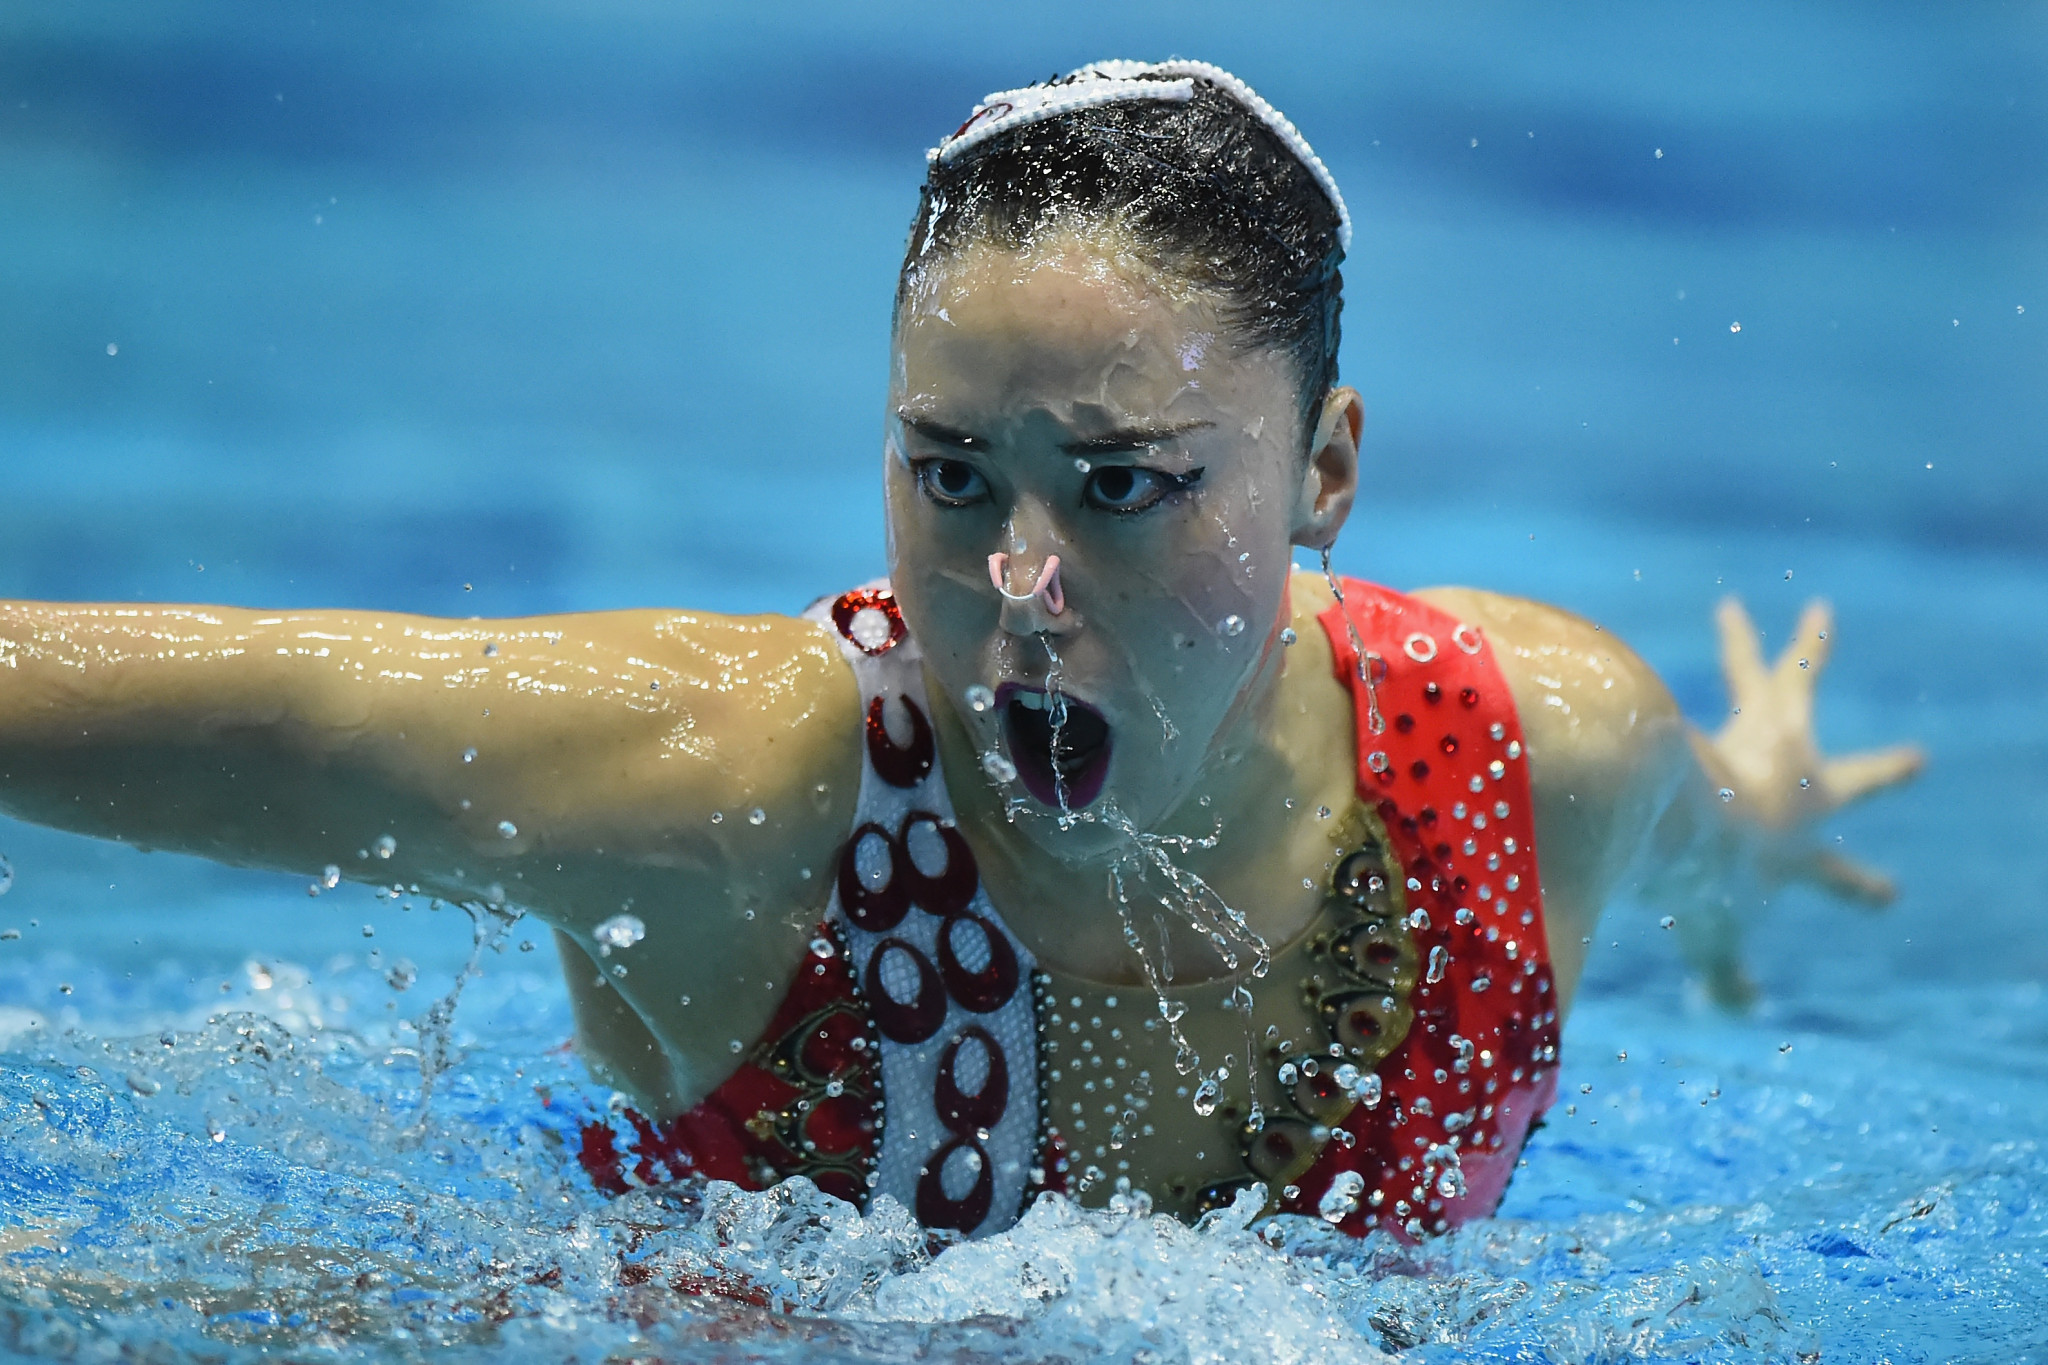 Yukiko Inui won seven golds in total on the latest leg of the FINA Artistic Swimming World Series ©Getty Images